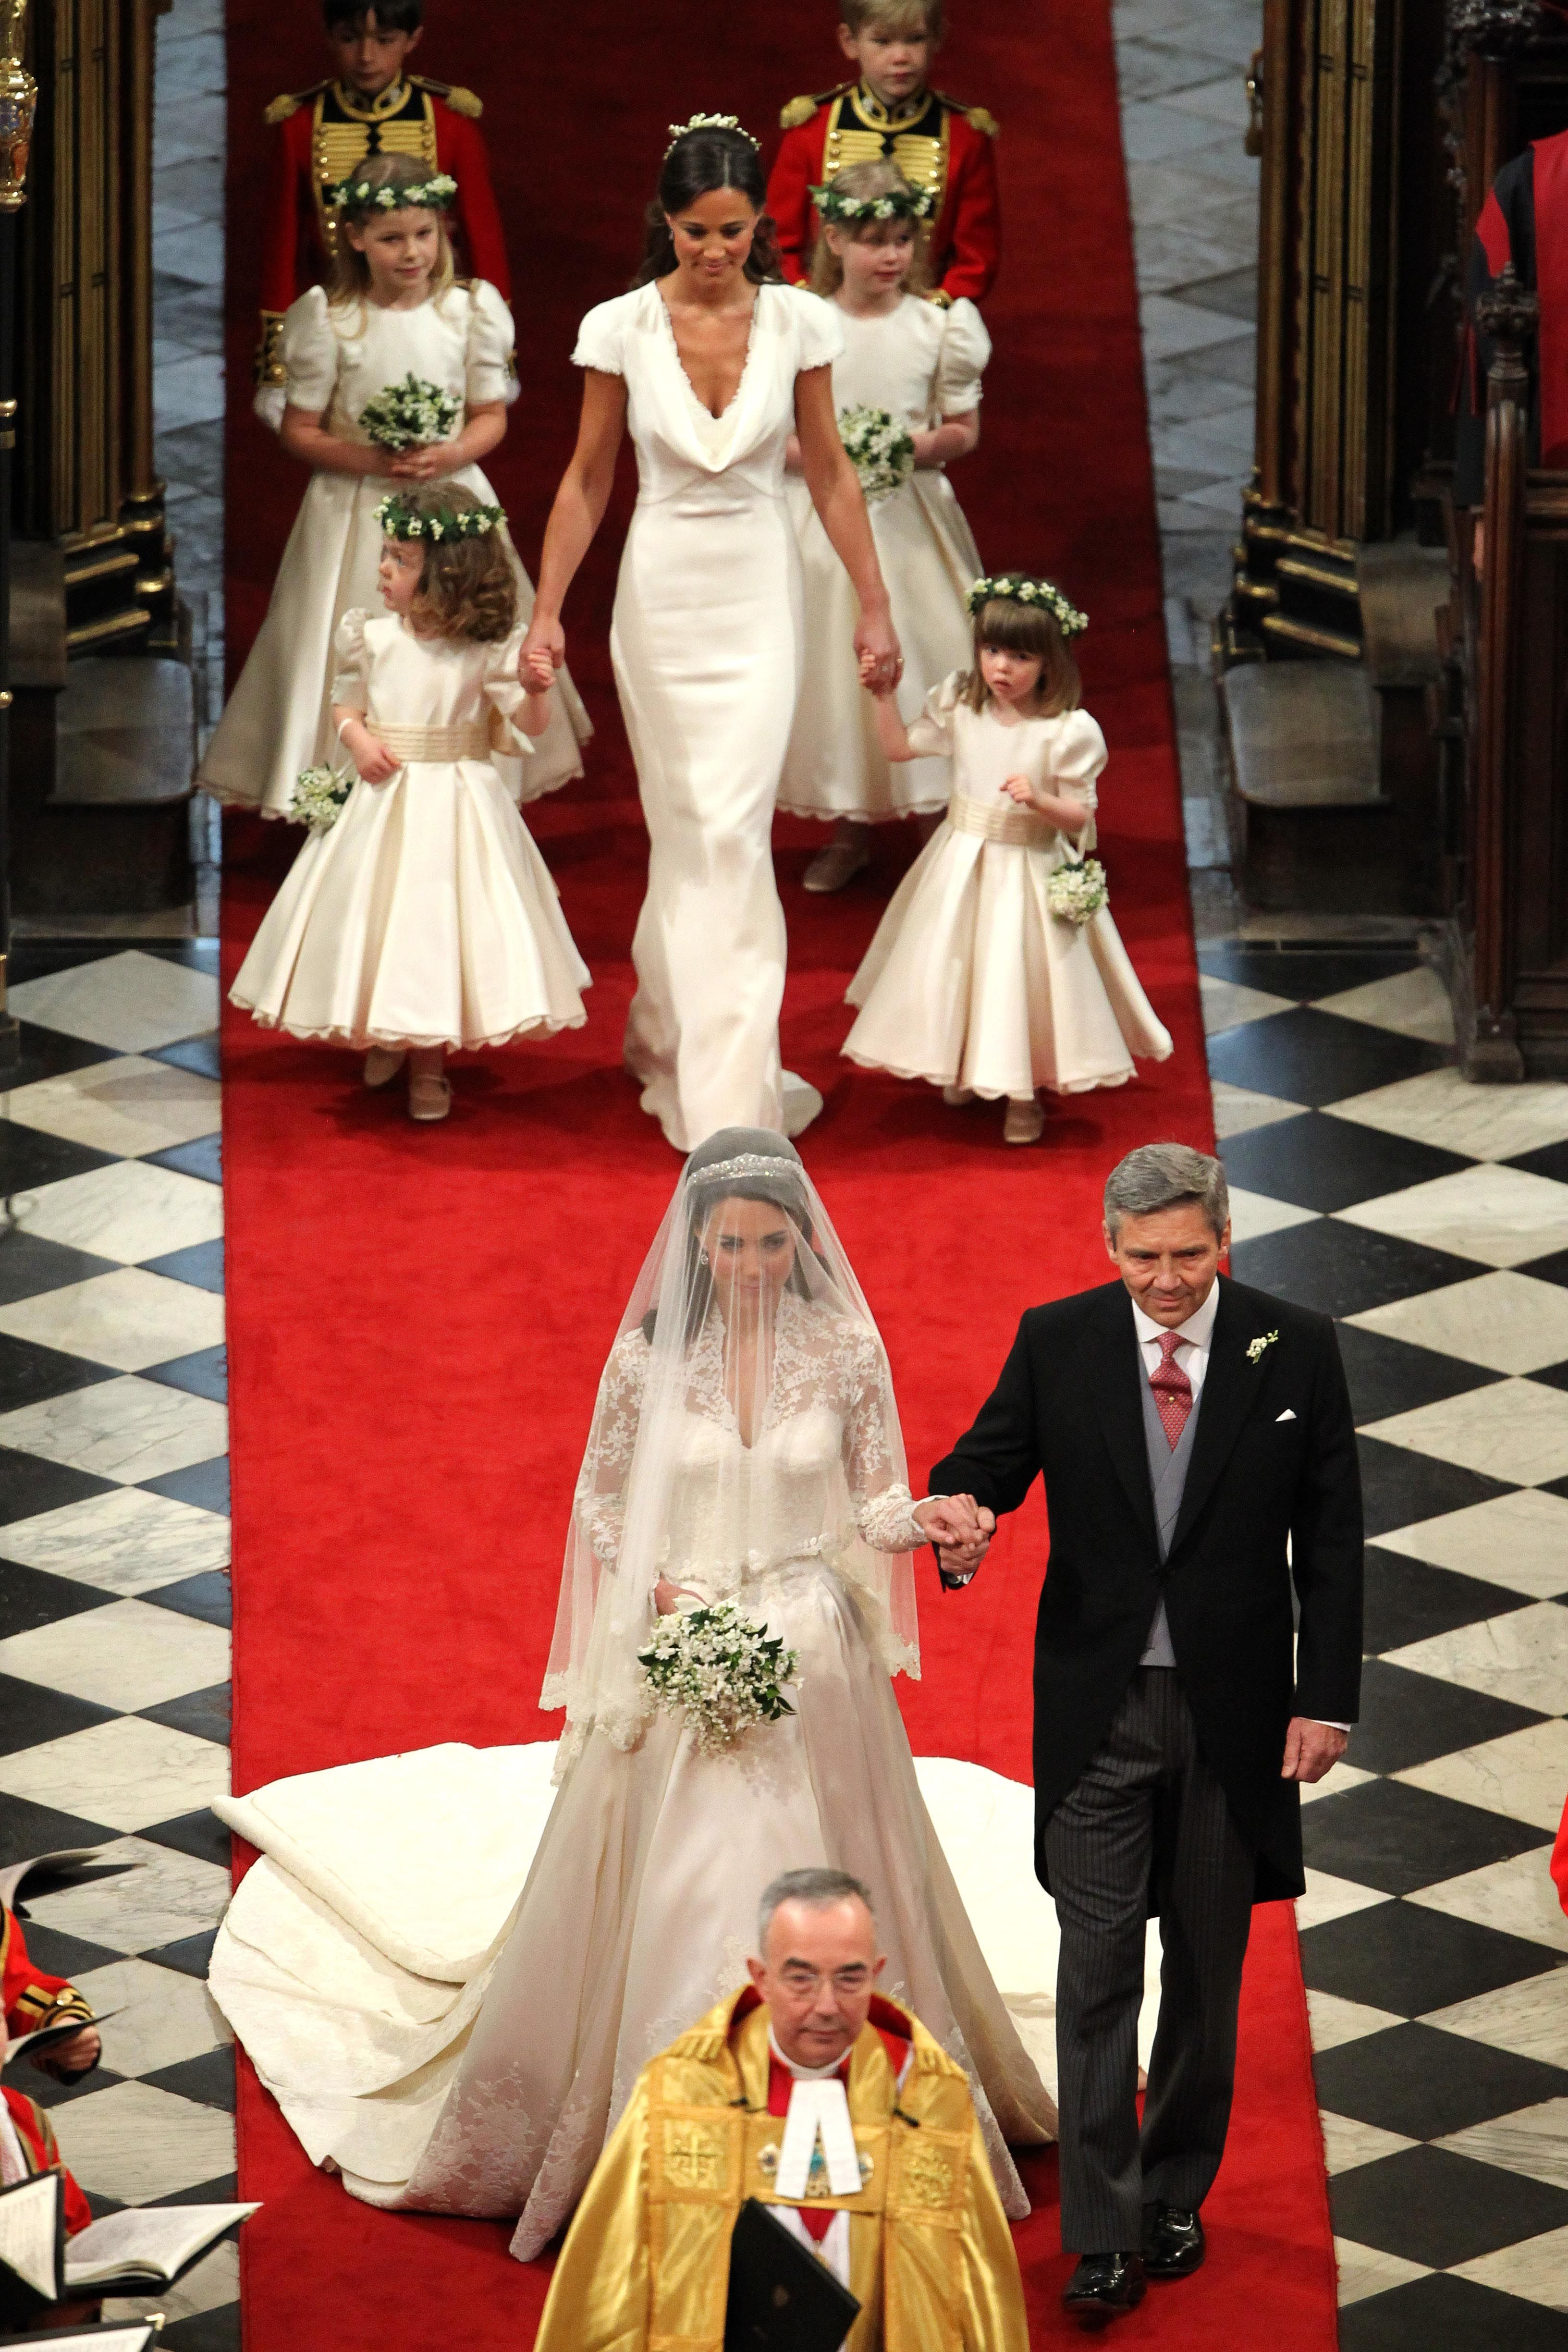 Prince William And Kate Middleton At Royal Wedding Prince William Kate 19 Kate Middleton Hochzeit Konigliche Hochzeit Prinz William Und Kate